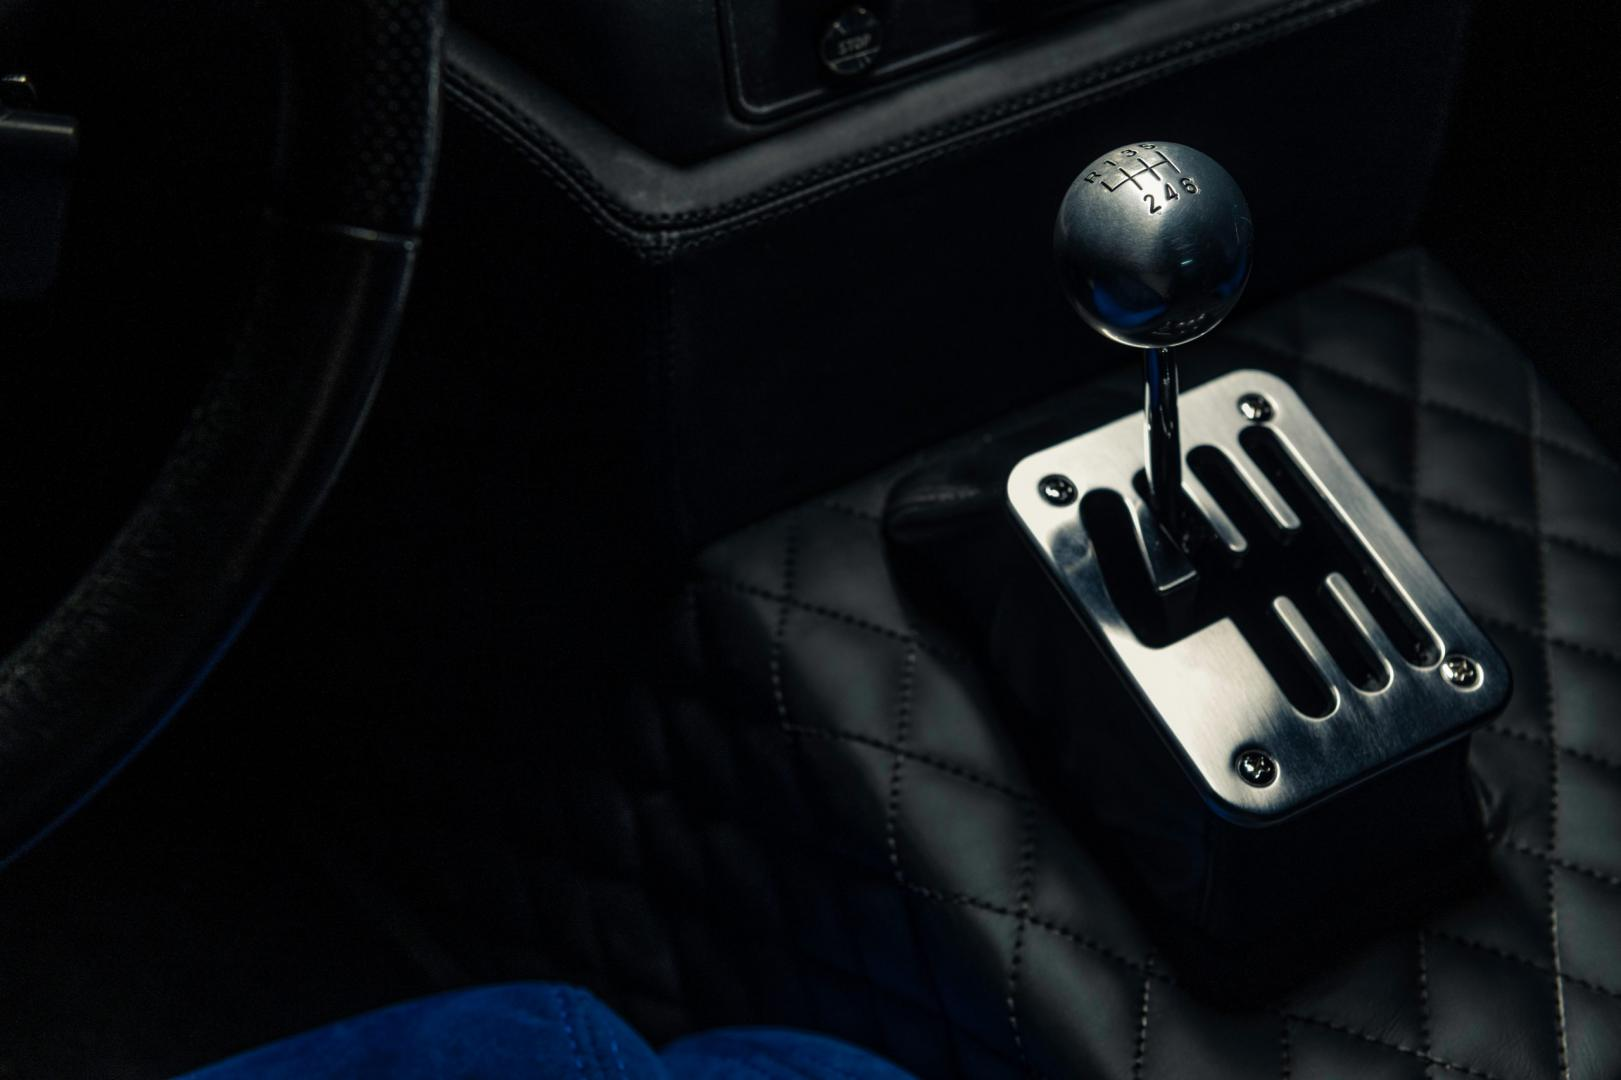 gated shifter in de breadvan hommage